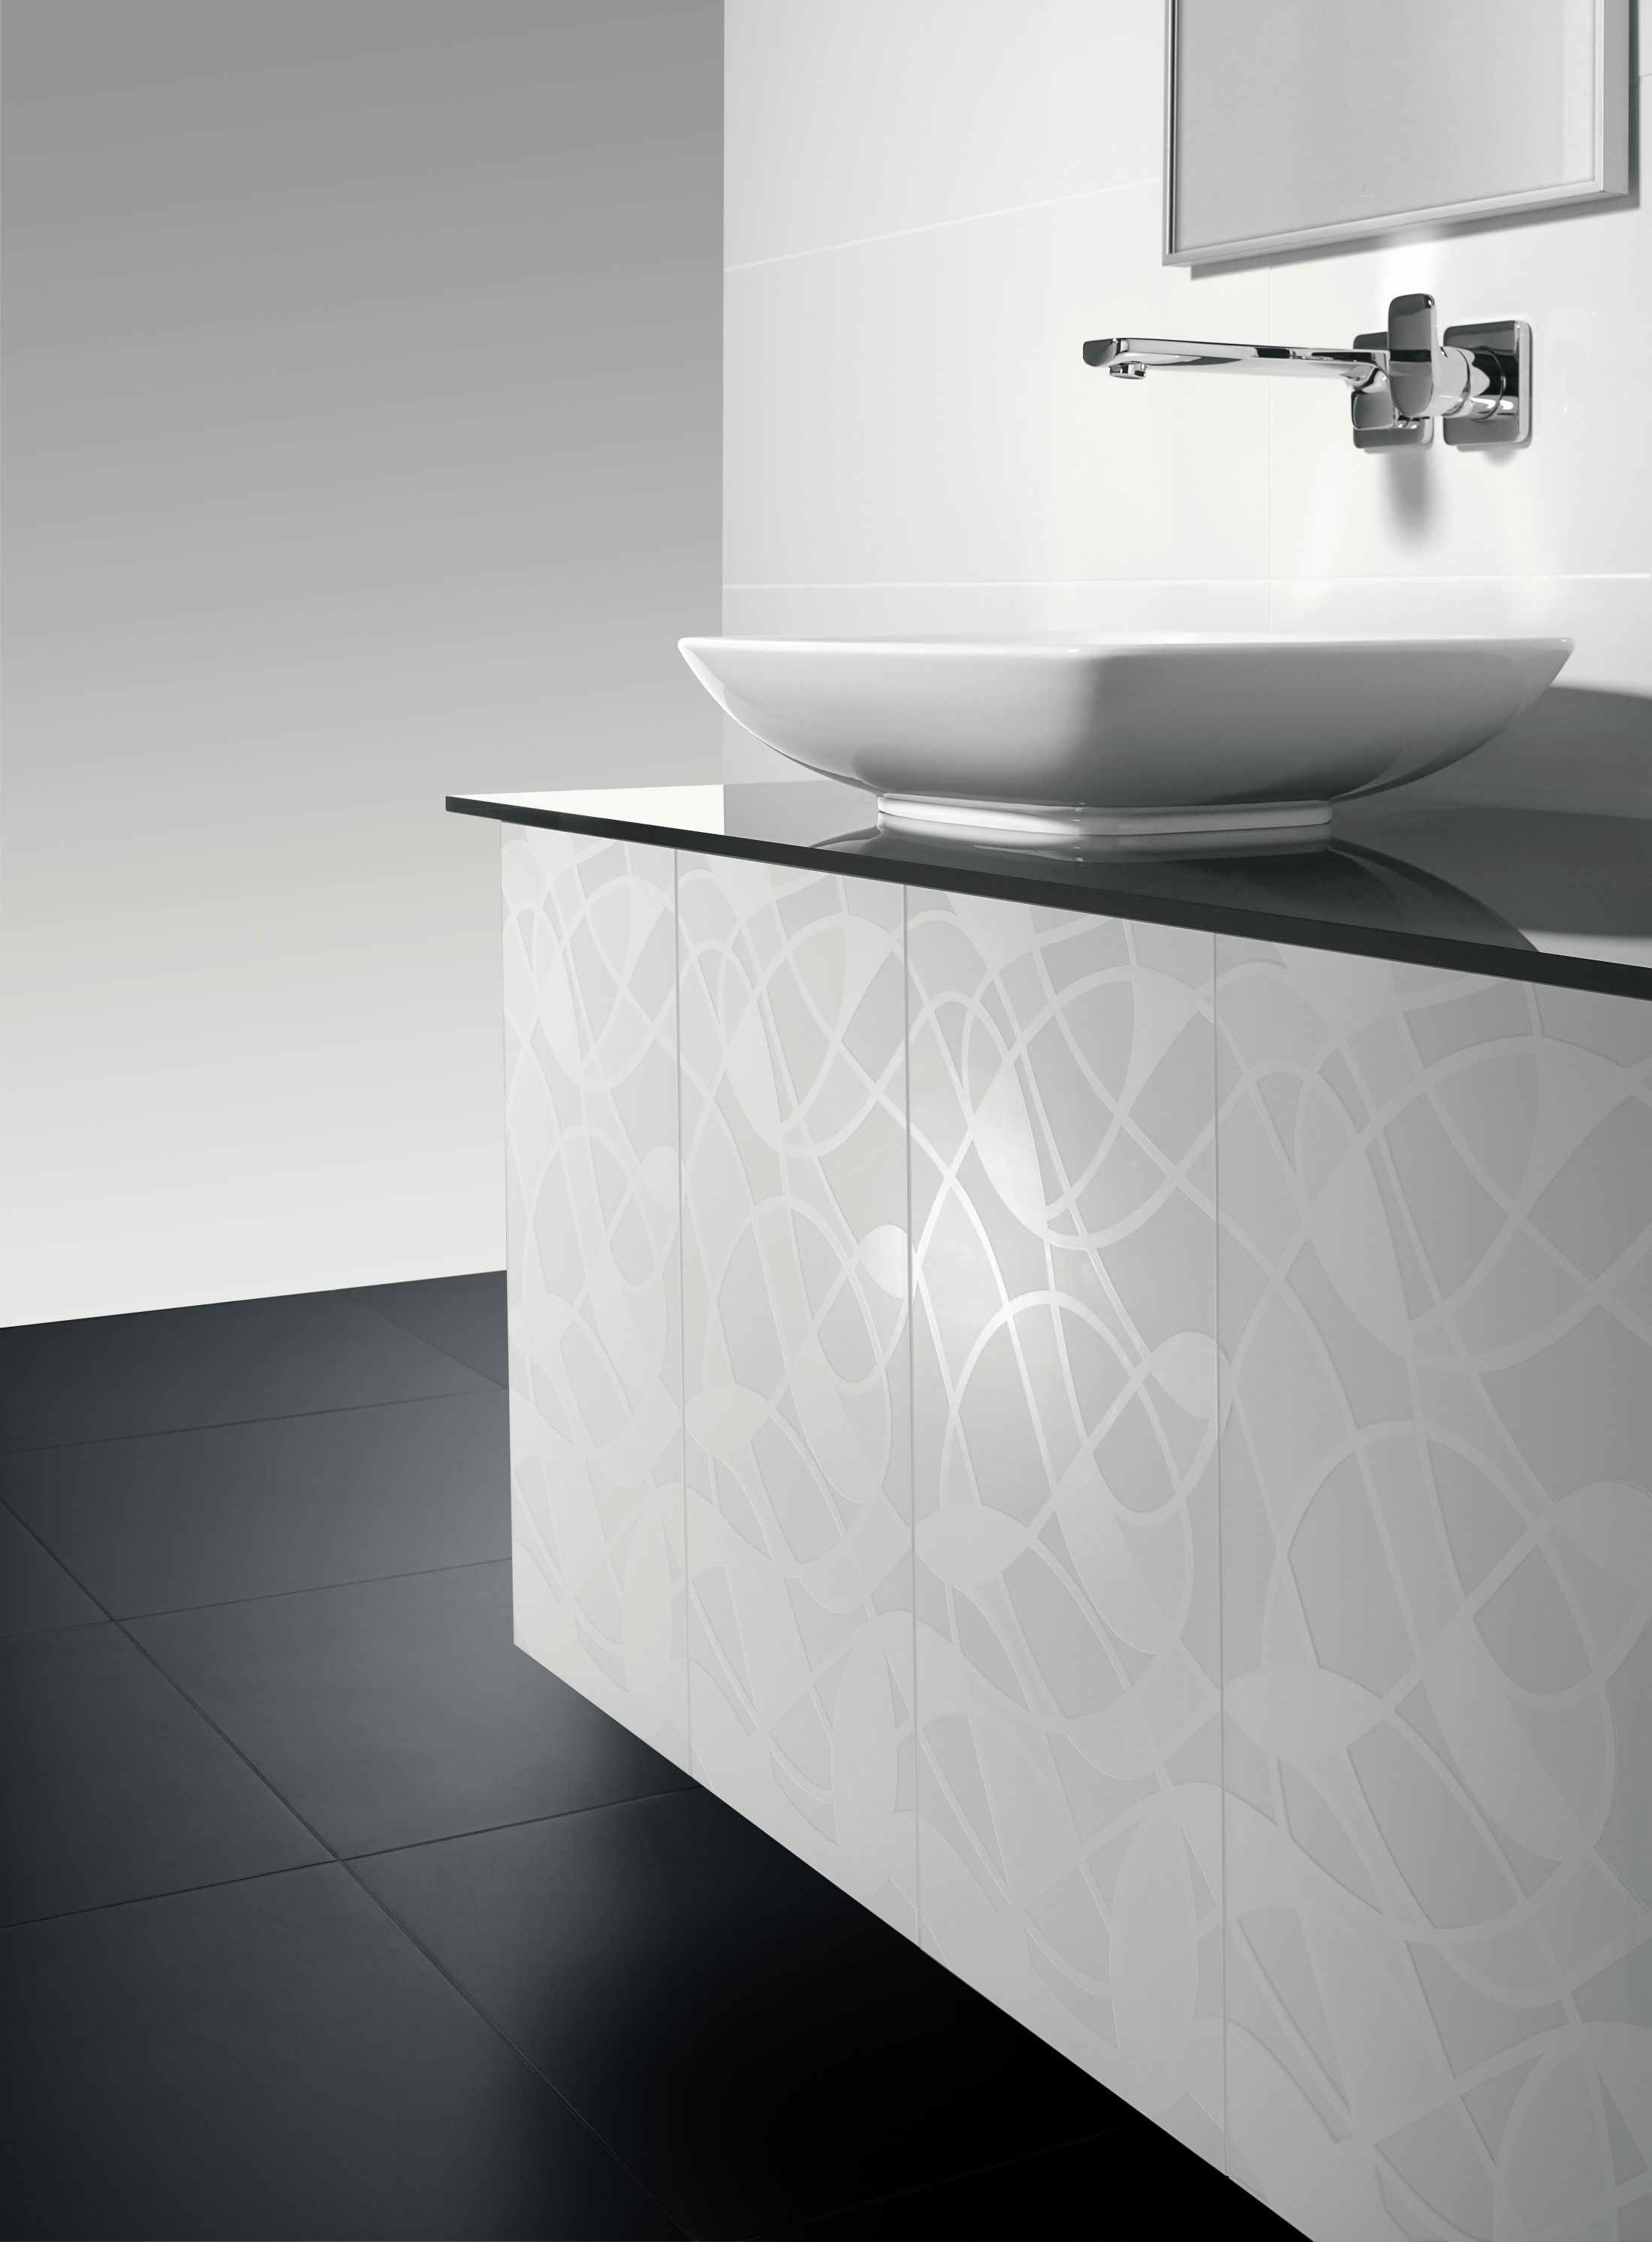 Aufsatzwaschbecken Installation Surface Mounted Washbasin Square Loop Friends By Villeroy Boch